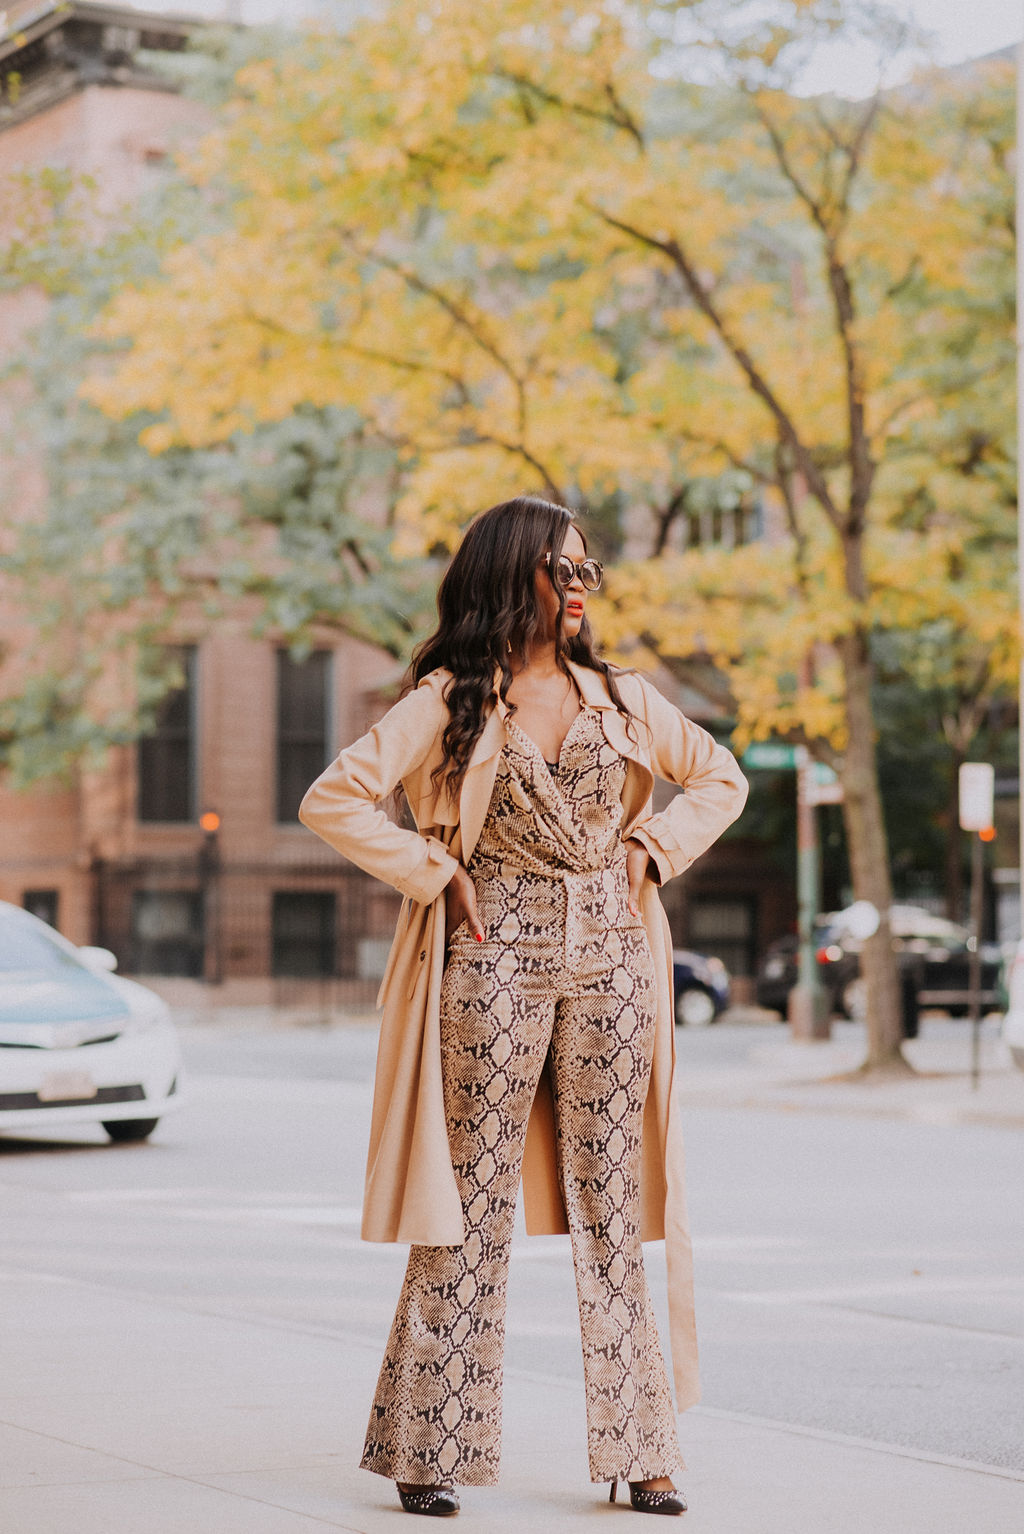 The Animal Print you should be wearing- Snake Print